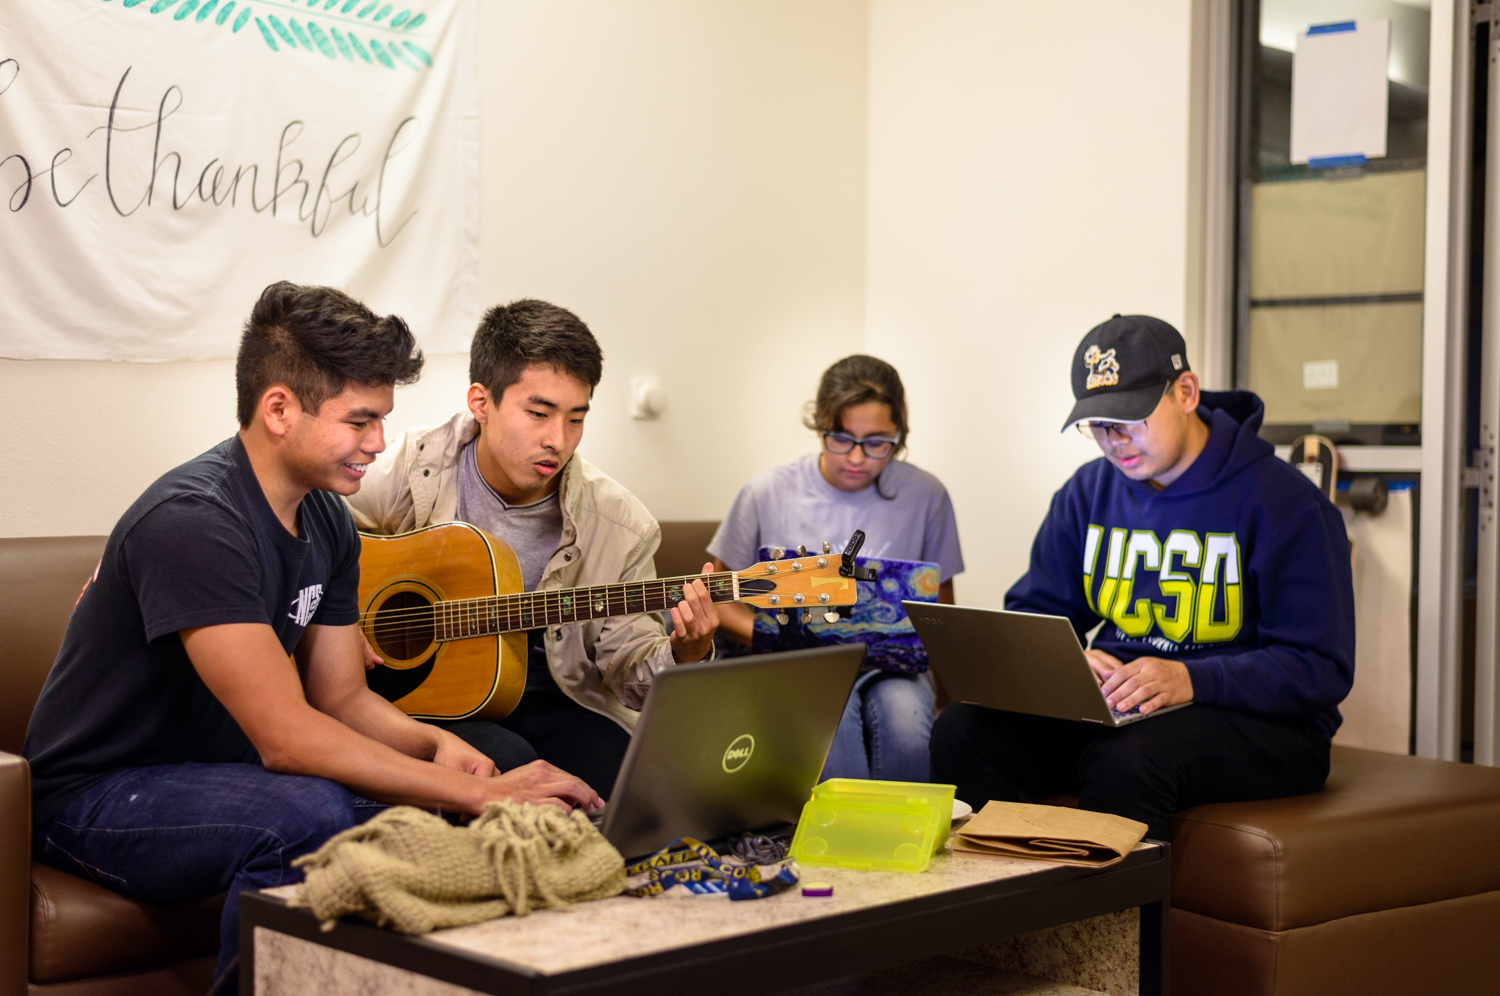 InterVarsity students sitting on couch playing guitar